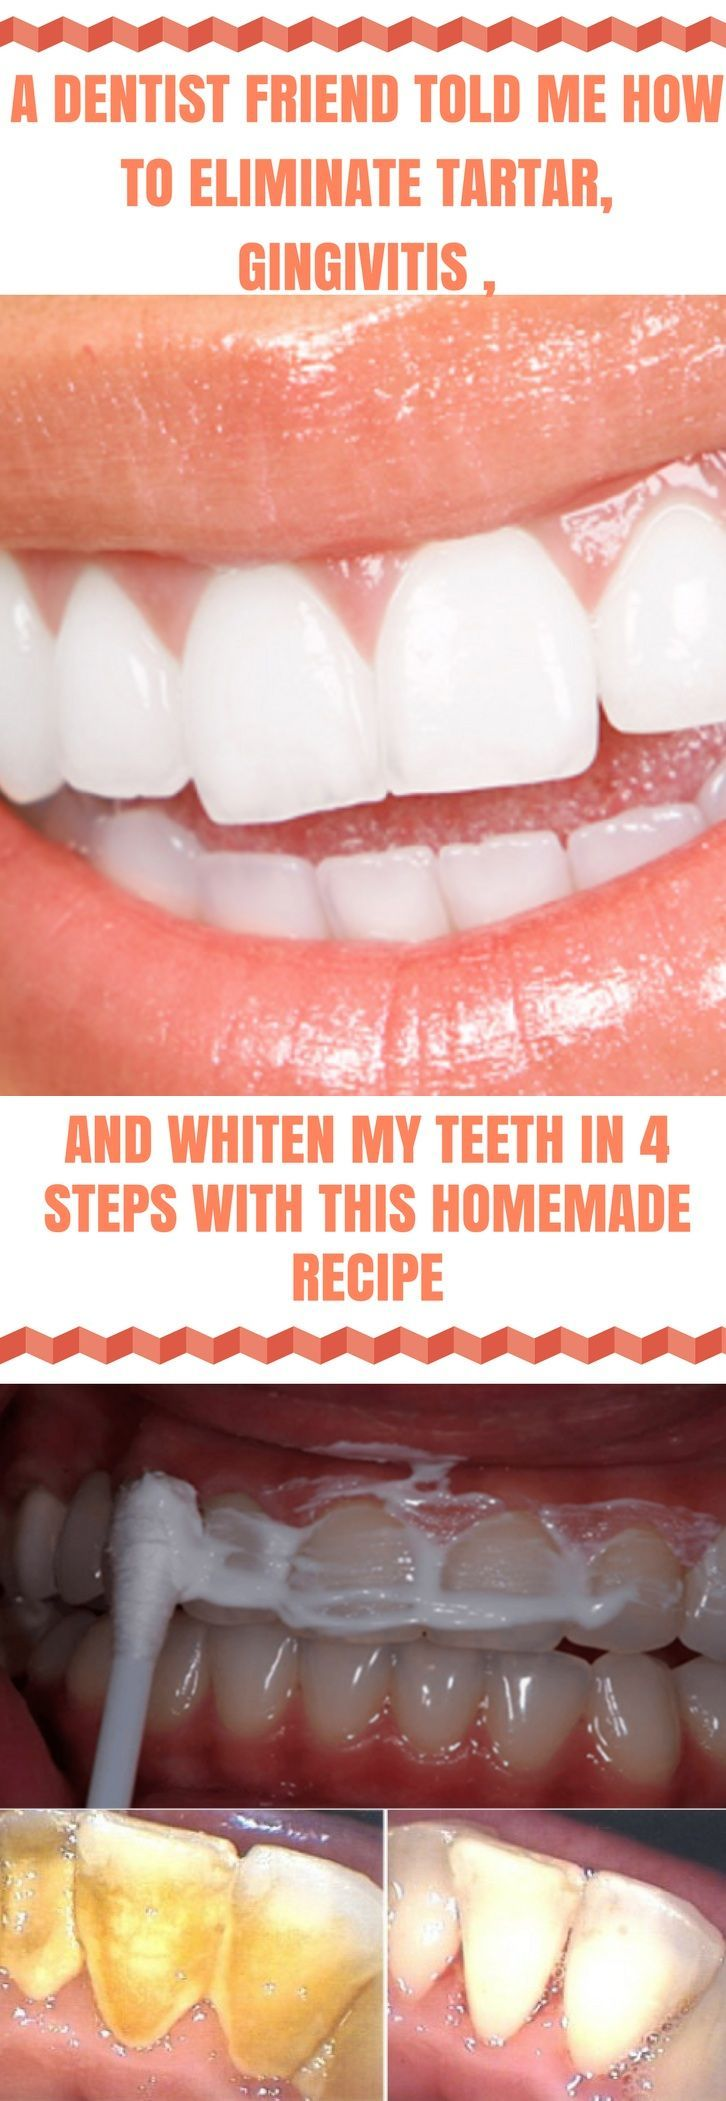 A Dentist Friend Told Me How To Eliminate Tartar, Gingivitis and Whiten My Teeth In 4 Steps With This Homemade Recipe #dental #tartar #gingivitis #white #teeth #homemade #homeremedies #naturalremedies #diy